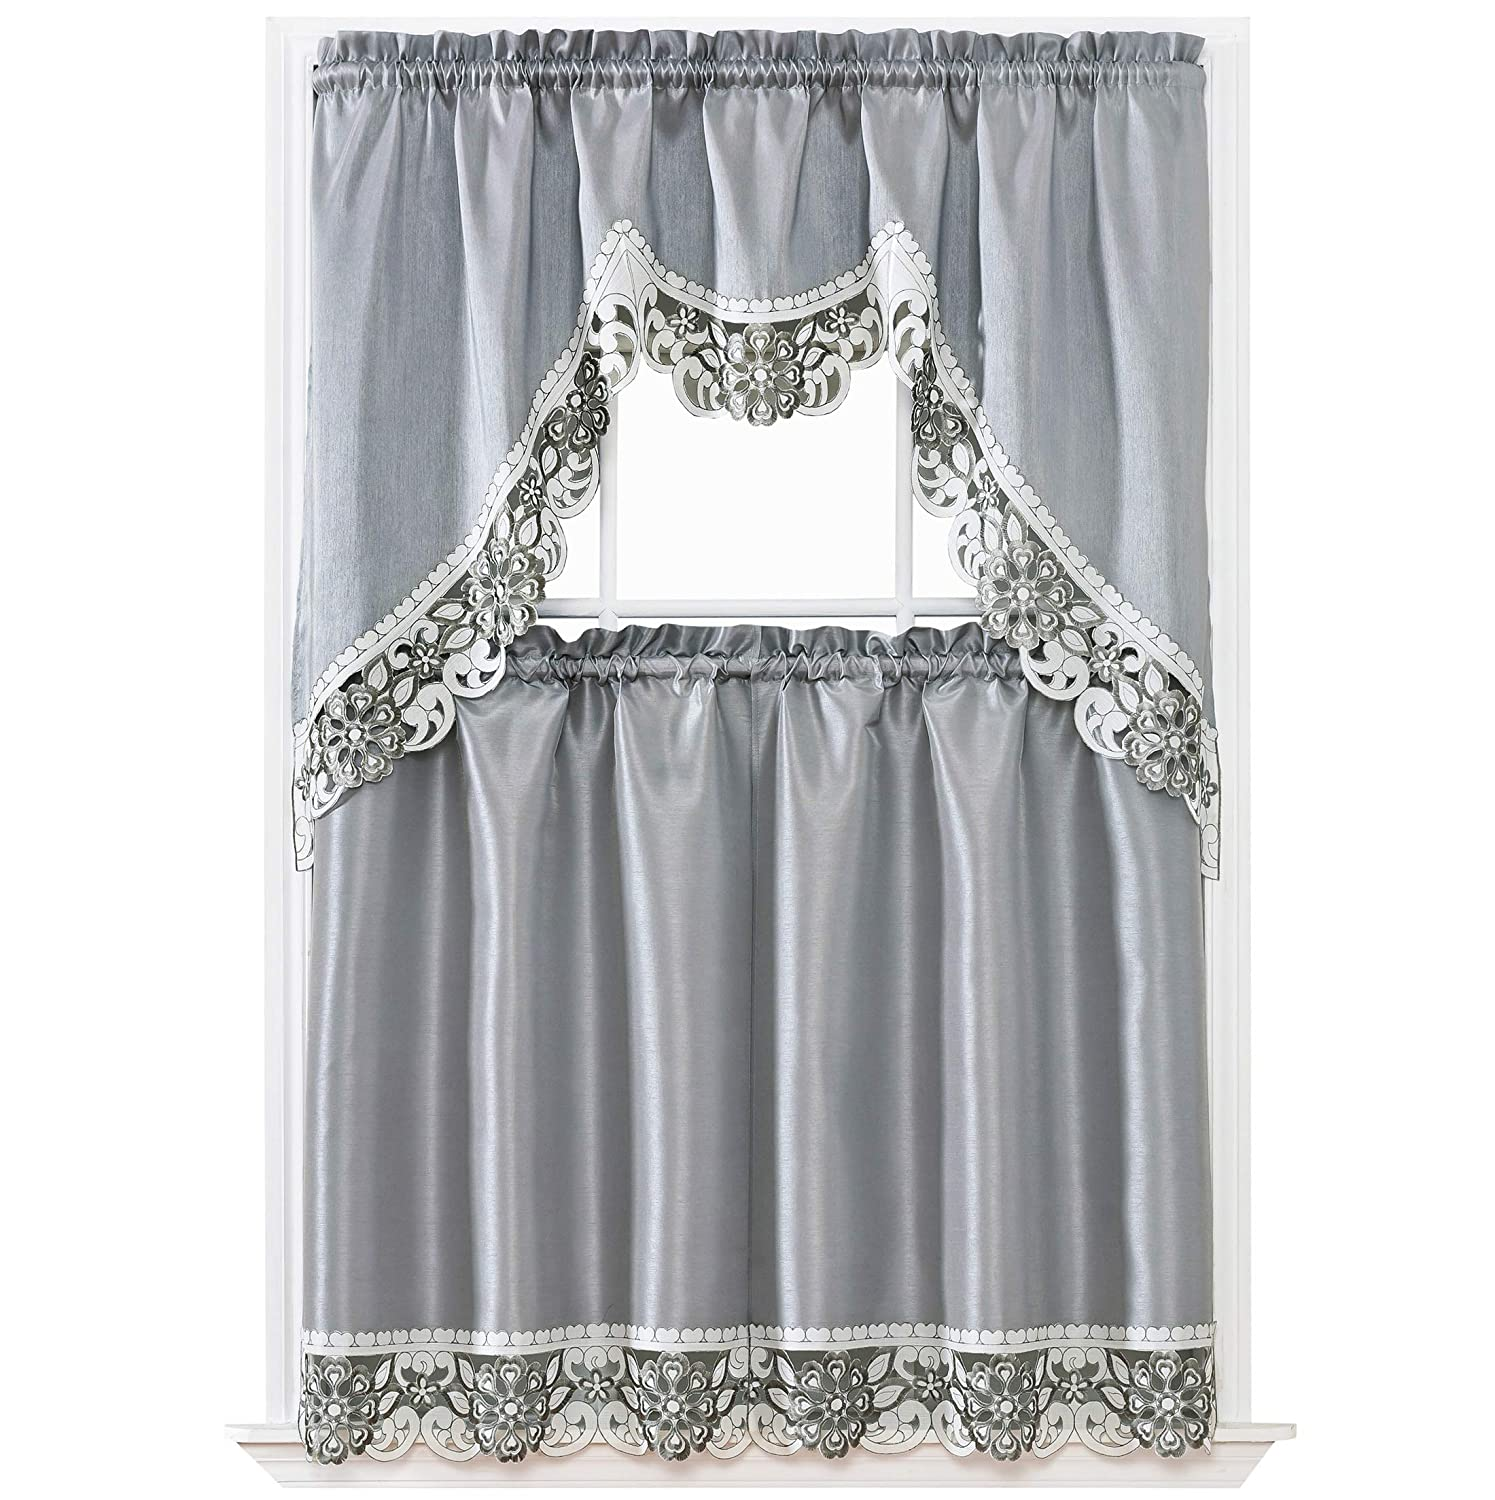 GOHD Golden Ocean Home Decor Dreamland Kitchen Cafe Curtain Set Swag Valance and Tier Set. Nice Matching Color Embroidery on Border with cutworks (Silver Grey)